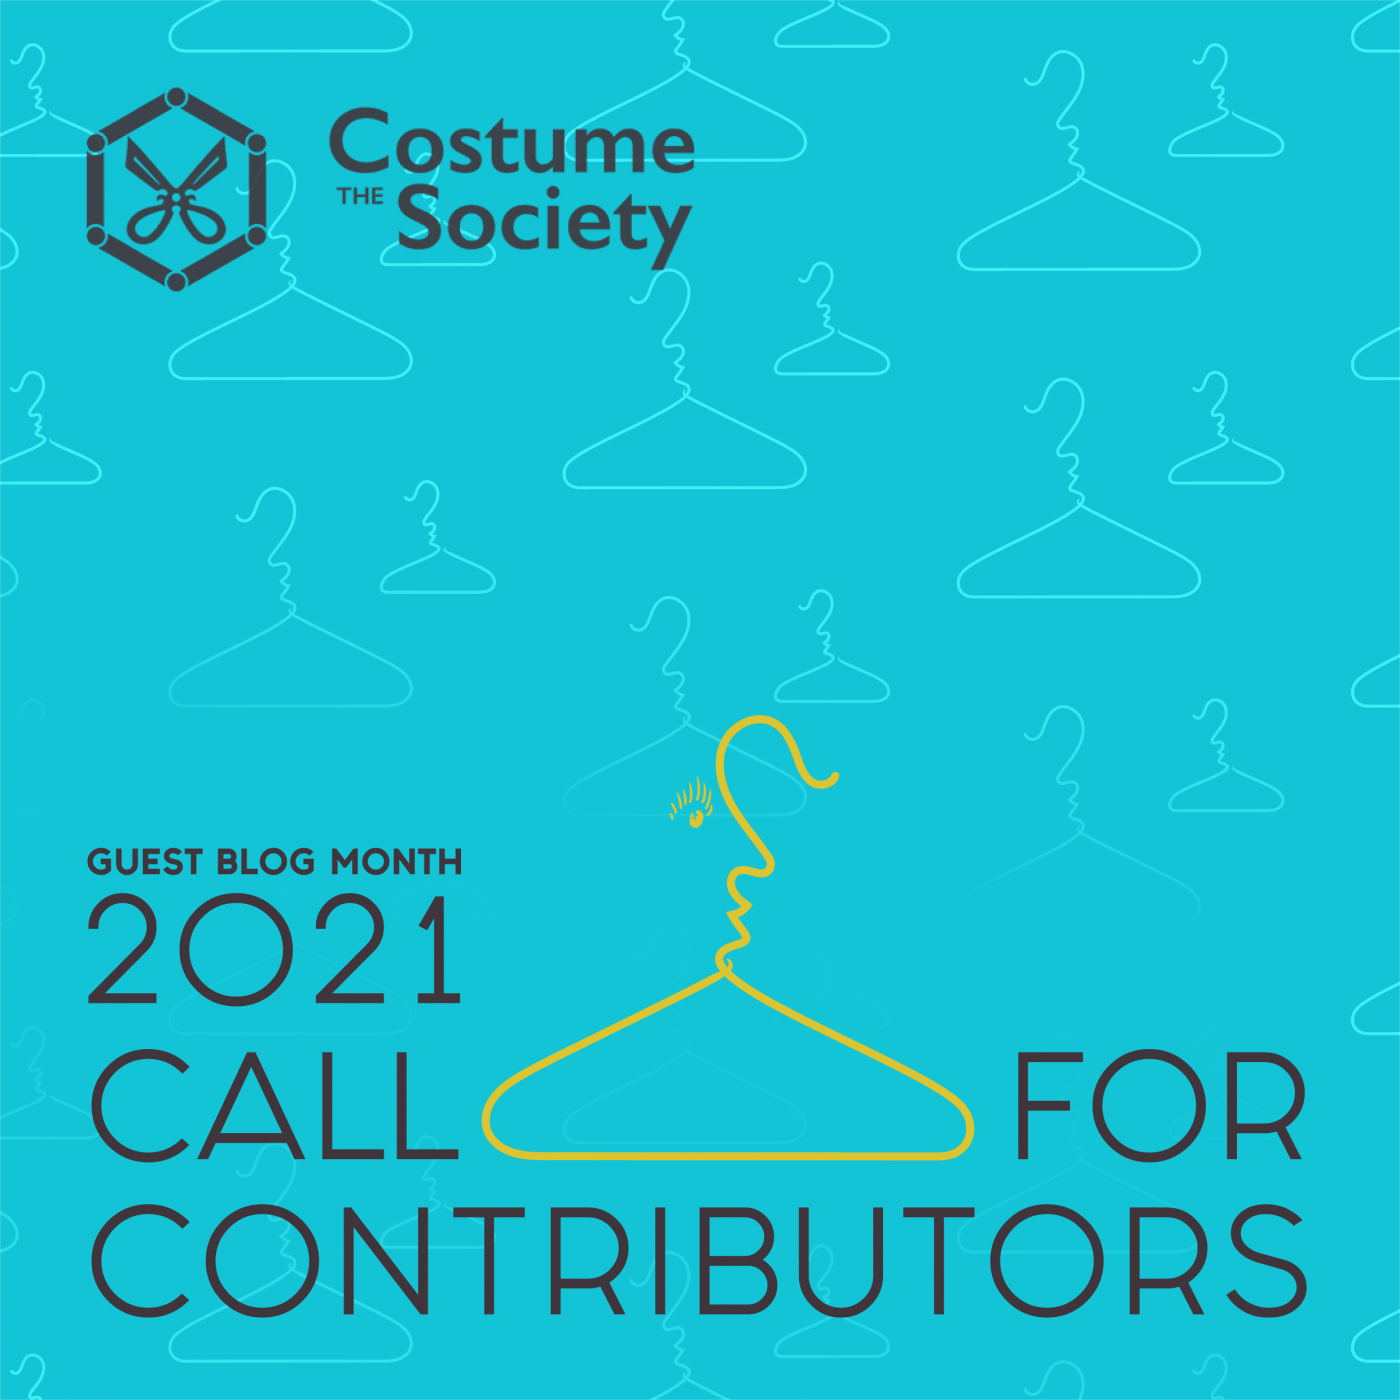 Call for Contributors: The Costume Society's Guest Blog Month, 2021. <br /> Image created by Elaine Manley.